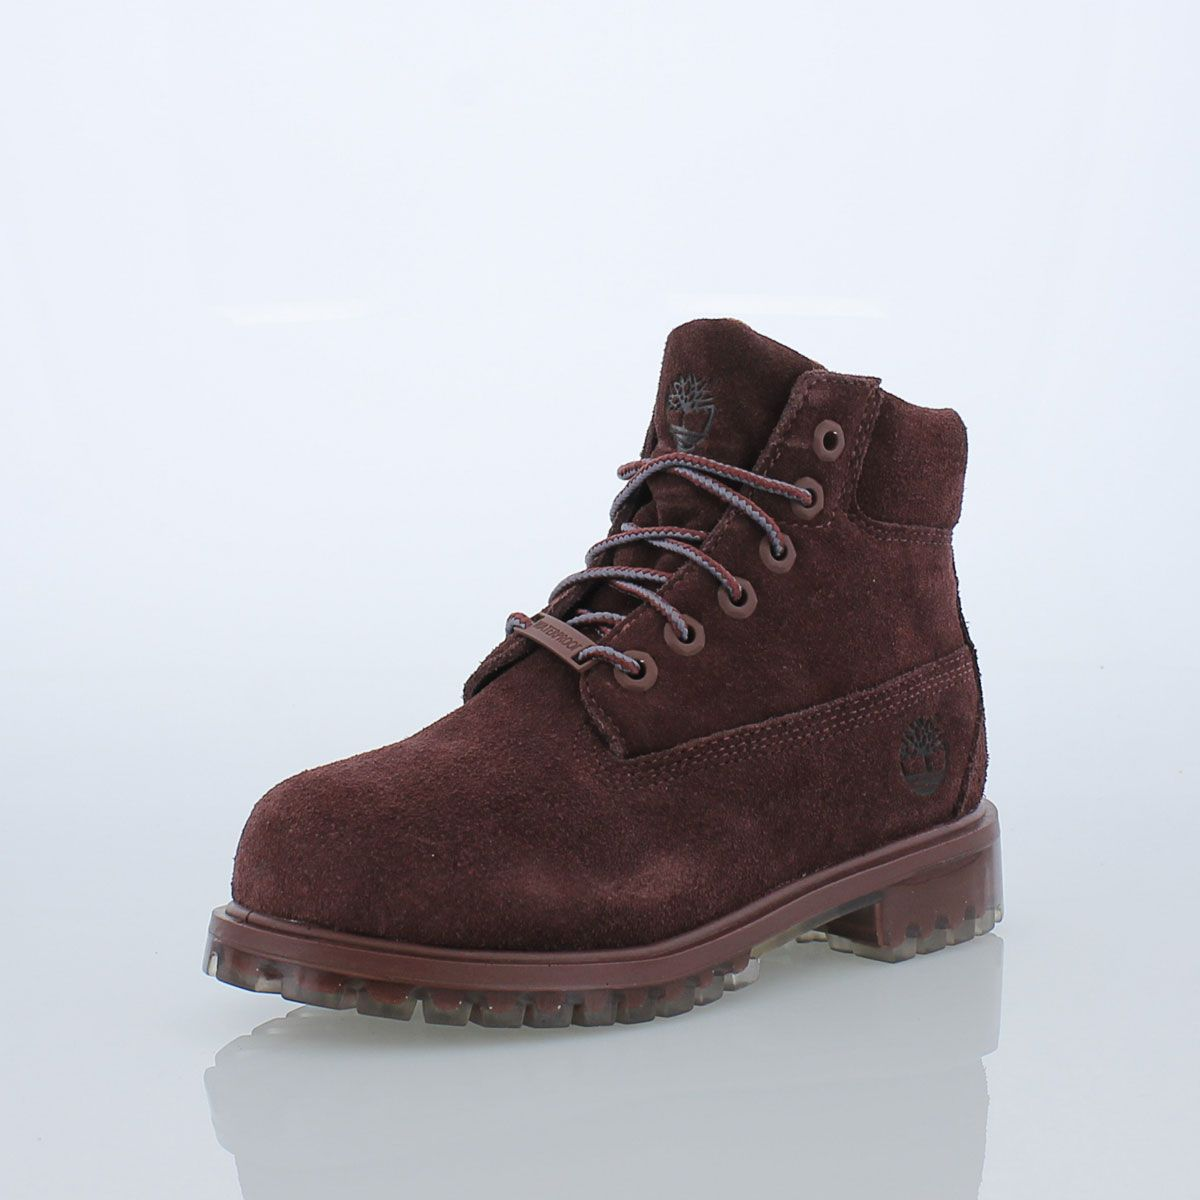 ac4e60725e7 Timberland 6-Inch Premium Autumn Leaf Timberland 6 Inch, Kids Sneakers, Waterproof  Boots